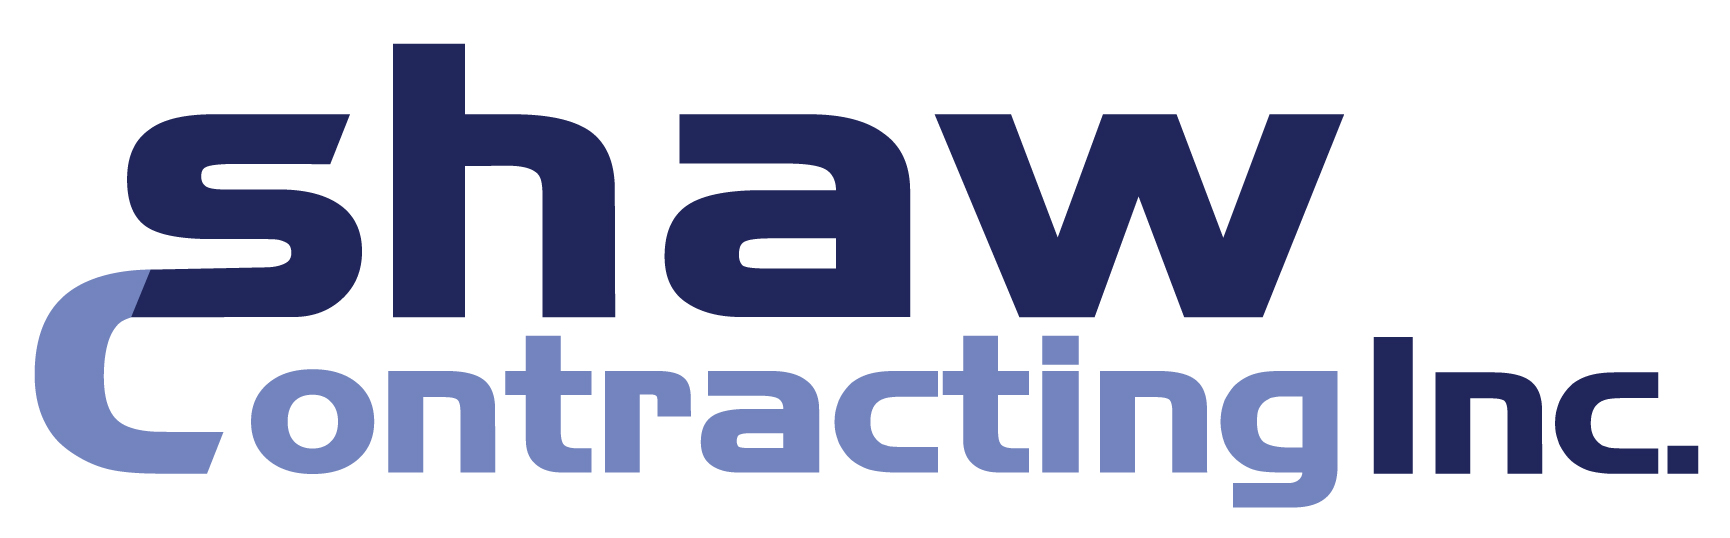 shaw_contracting